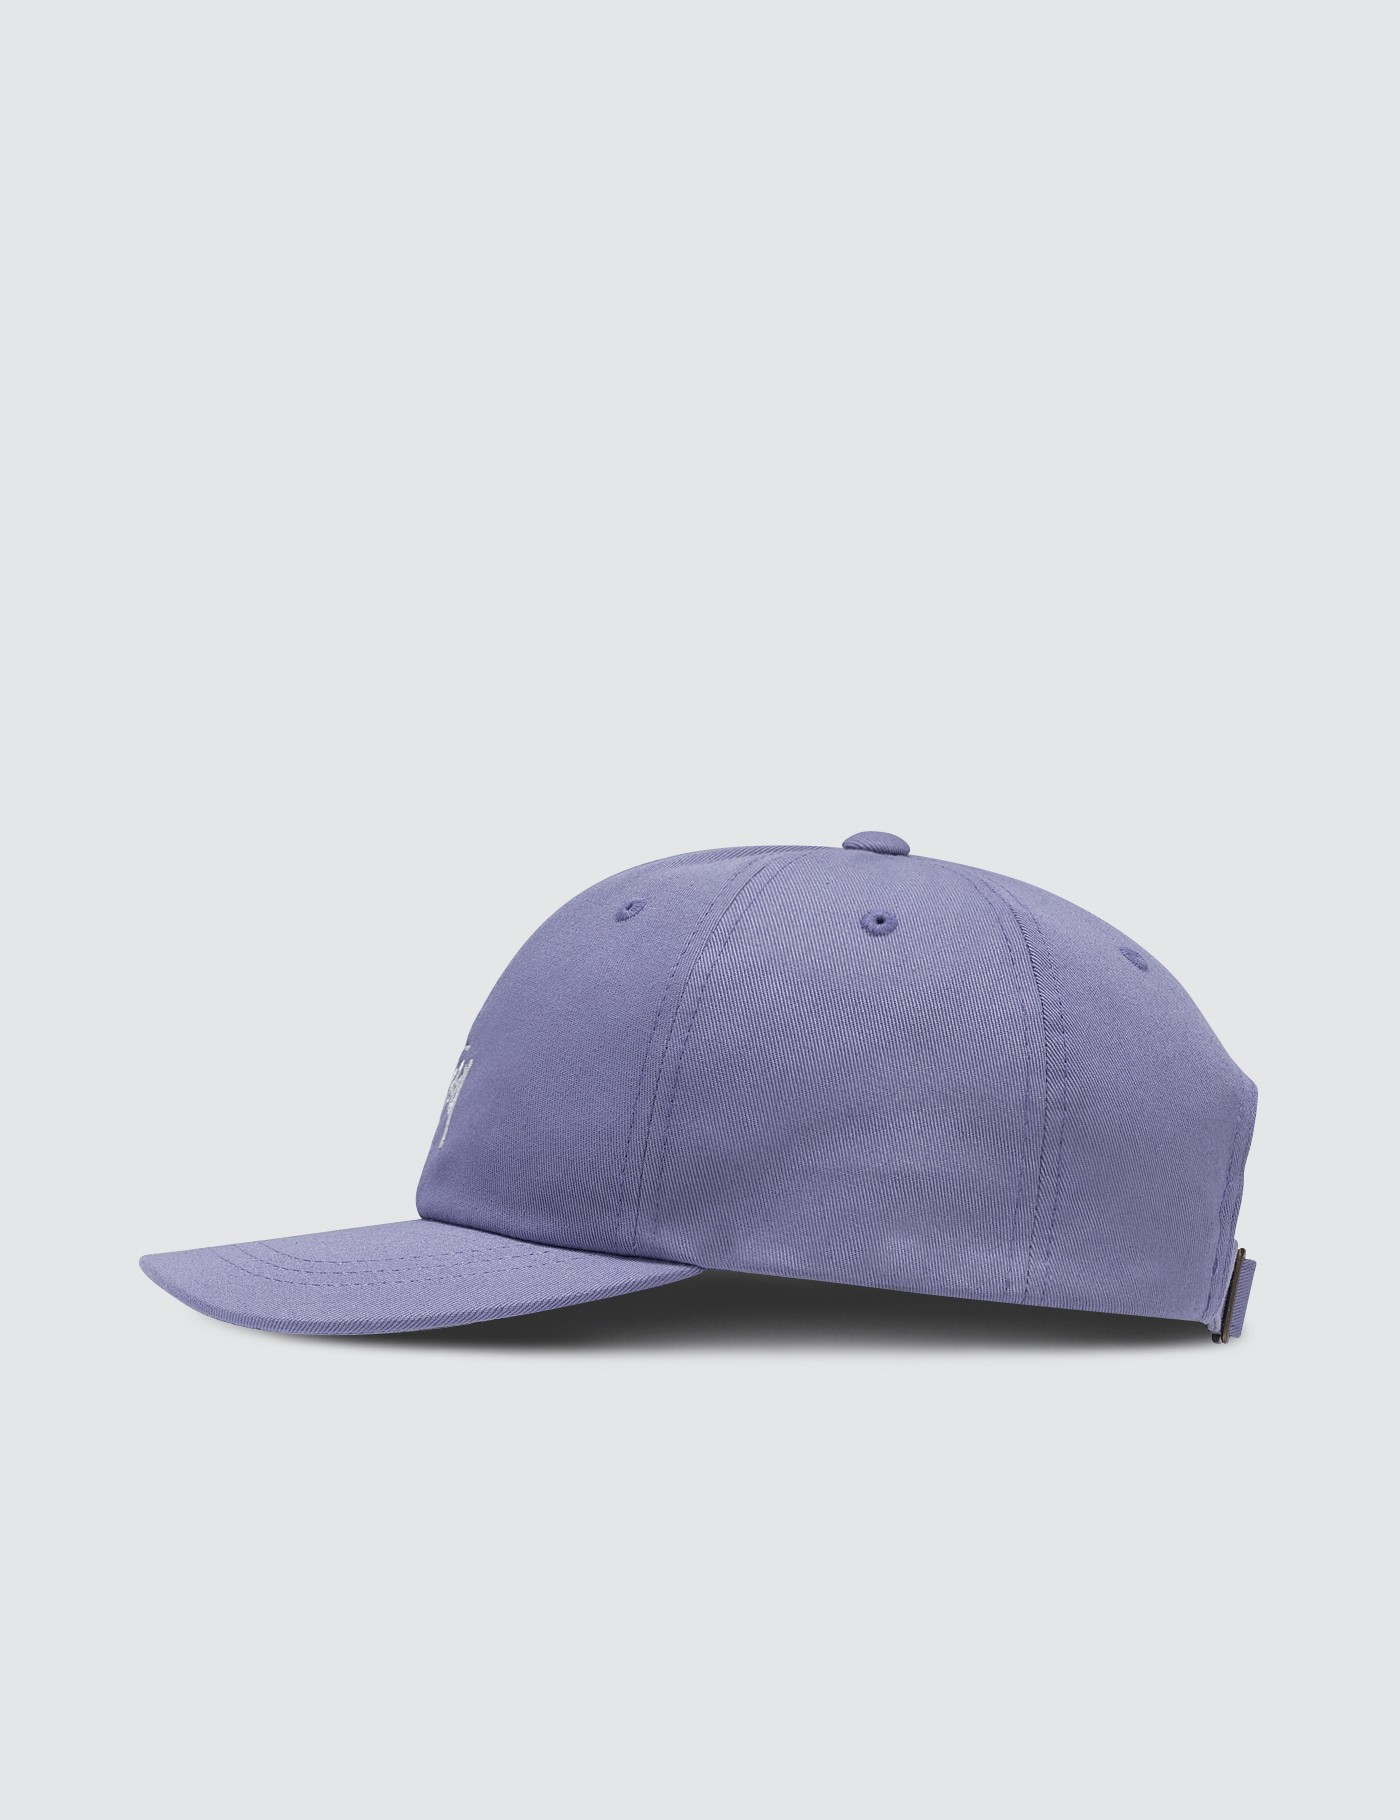 Stussy Sp19 Stock Low Pro Cap